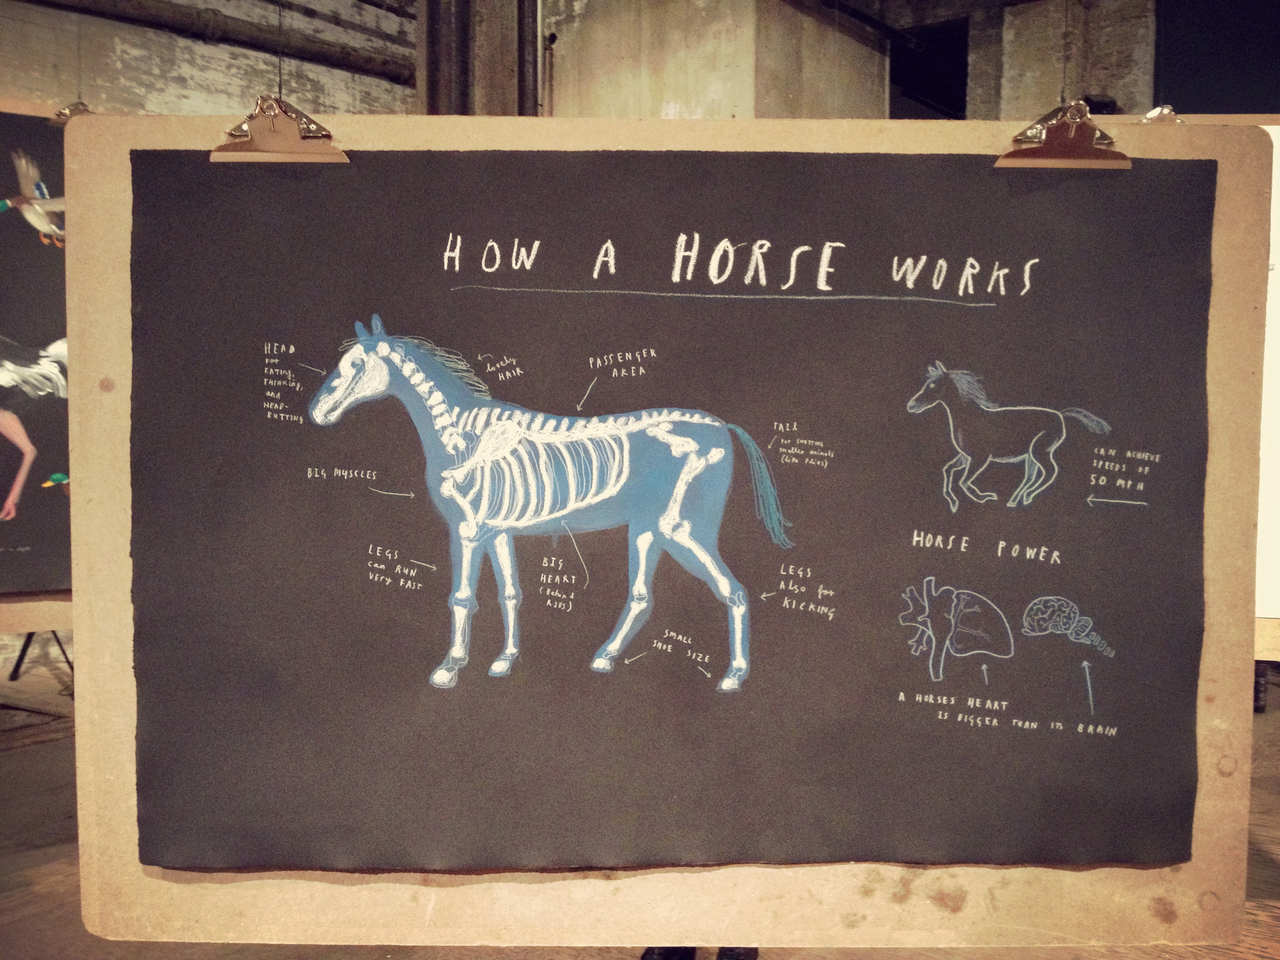 How a horse works by Mul Holland Hwang #peppersearching #pepper #panting #drawing #clipboard #blackboard